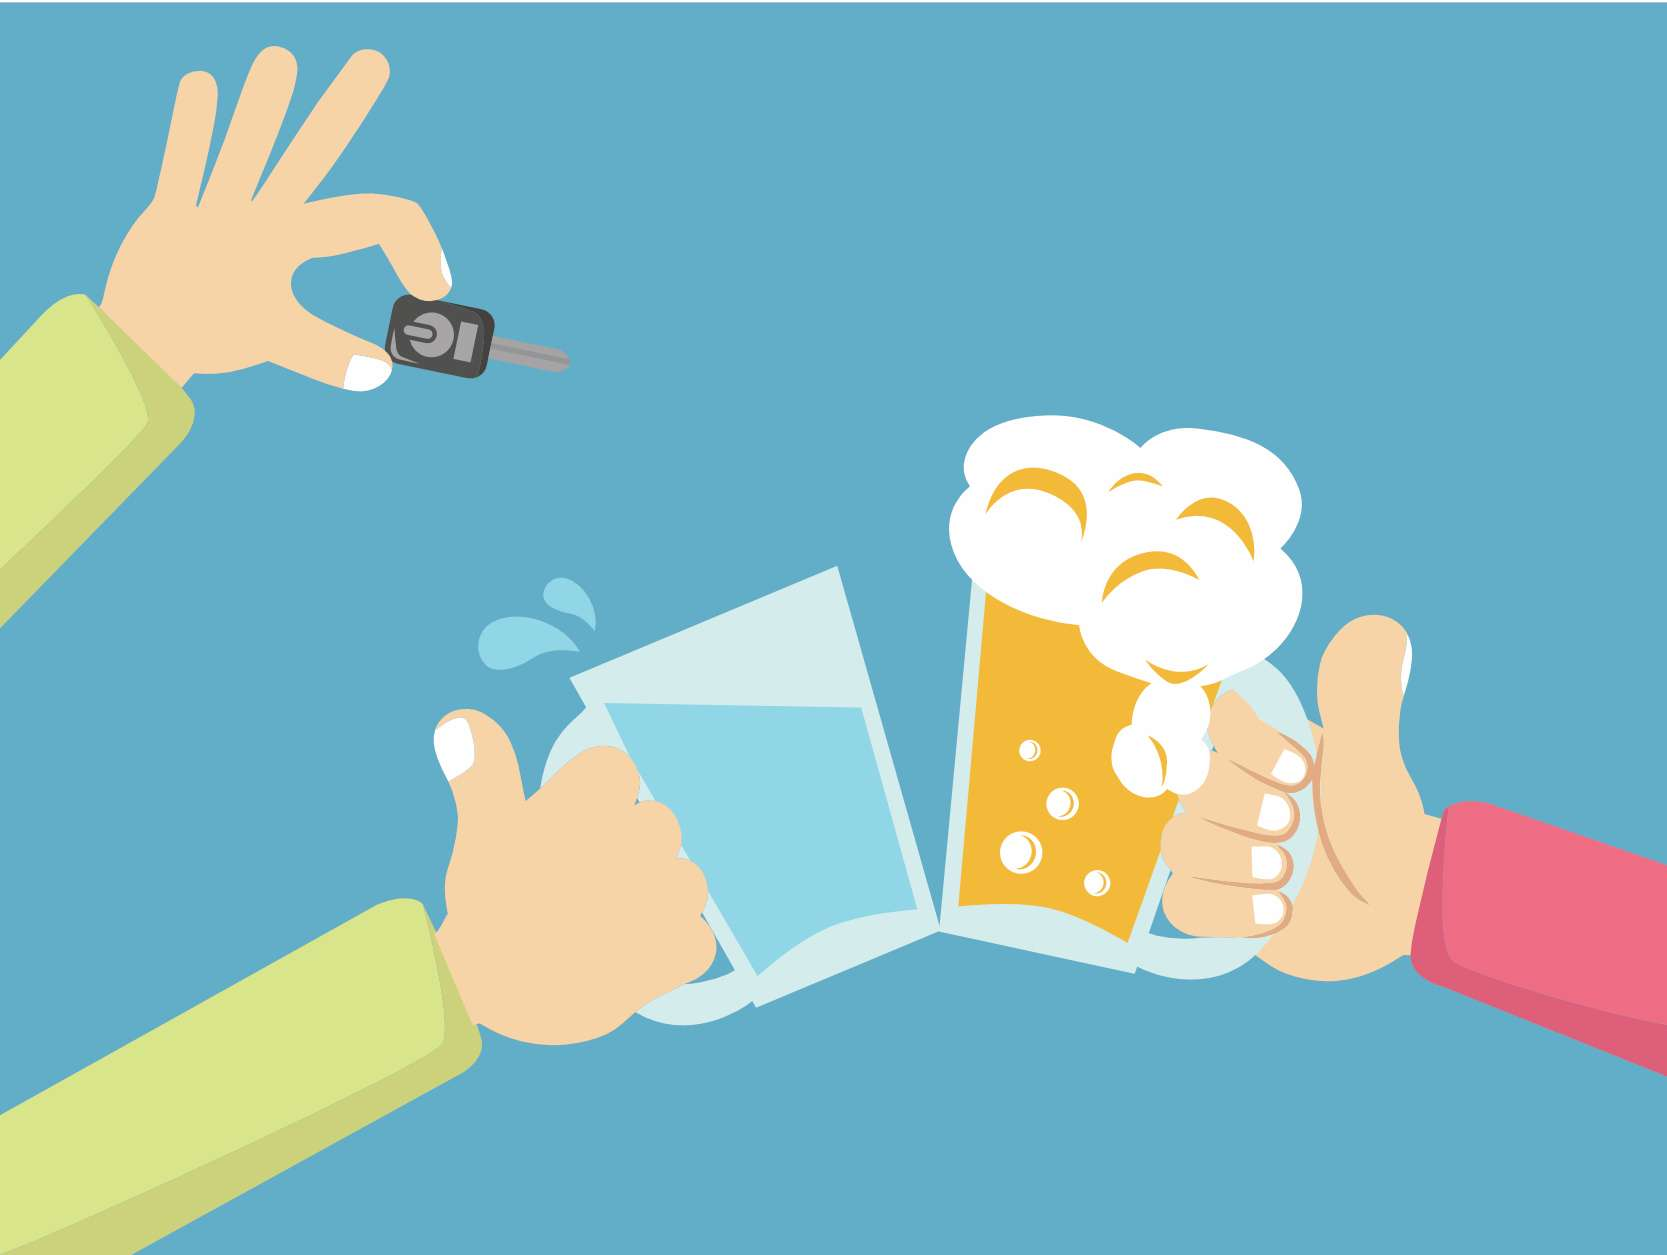 Par effet pervers, Uber encourage la consommation excessive d'alcool. © Boykung, Adobe Stock